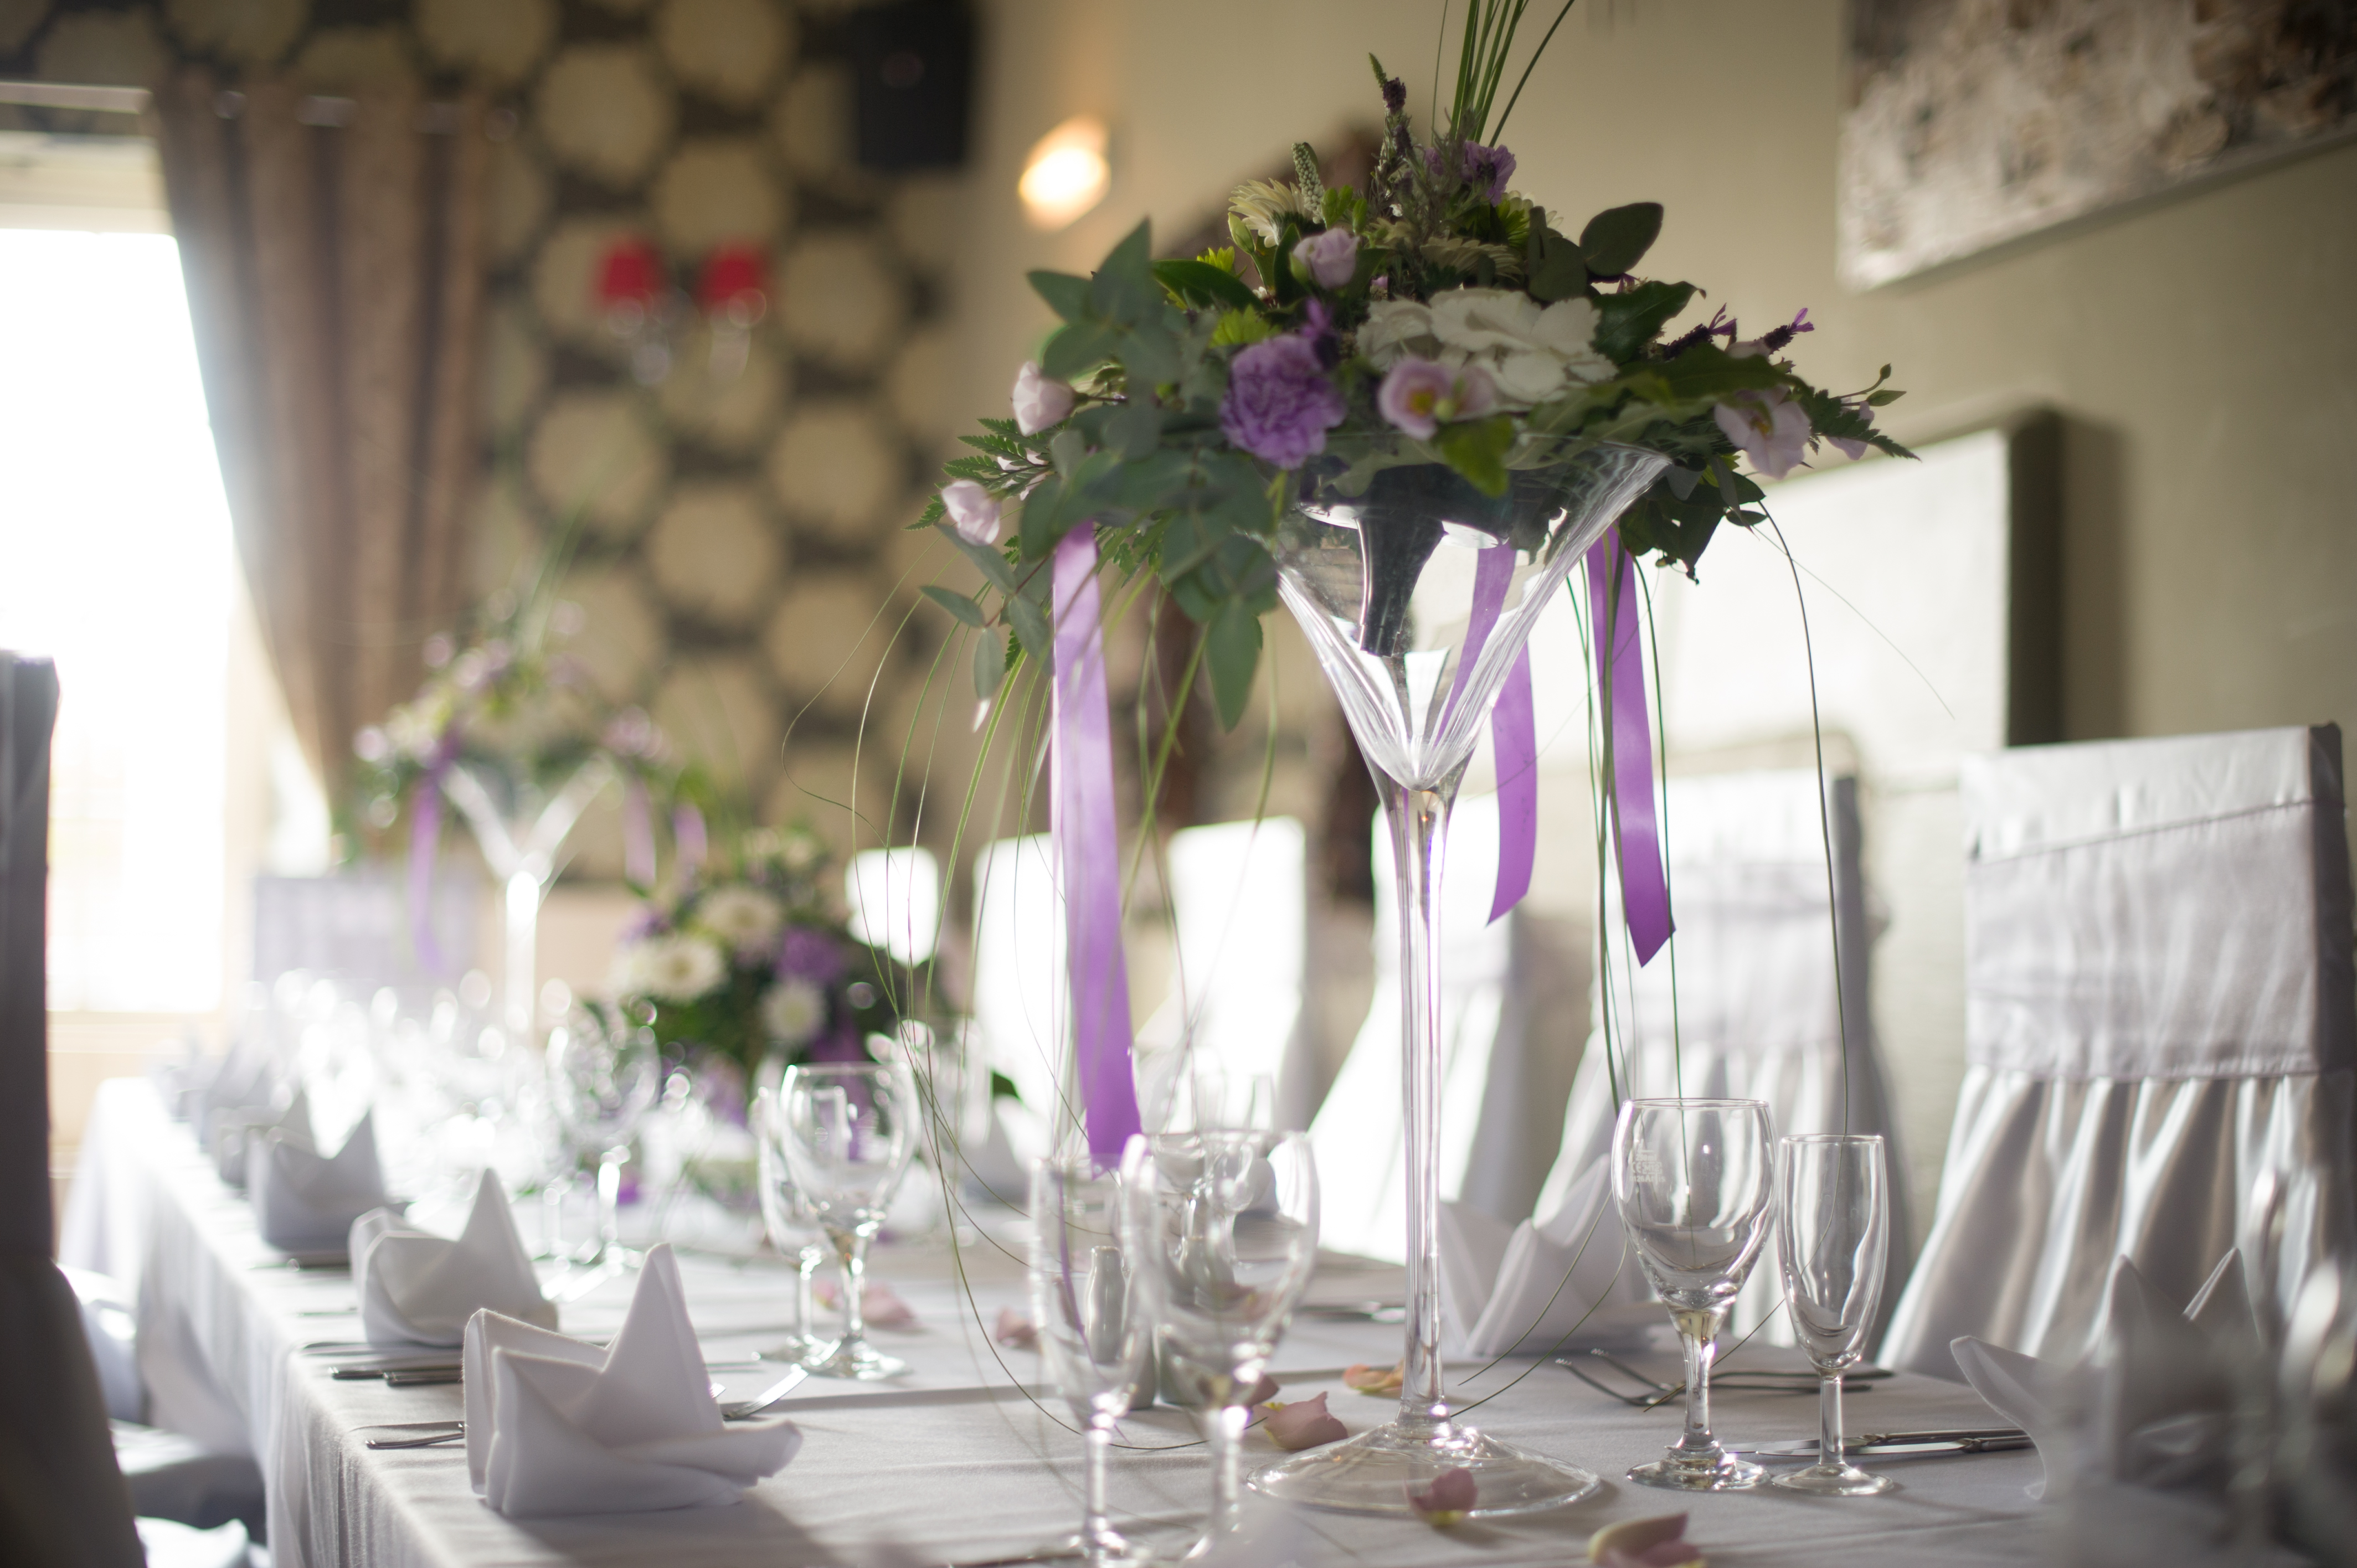 Weddings & Celebrations at Mezze Restaurants